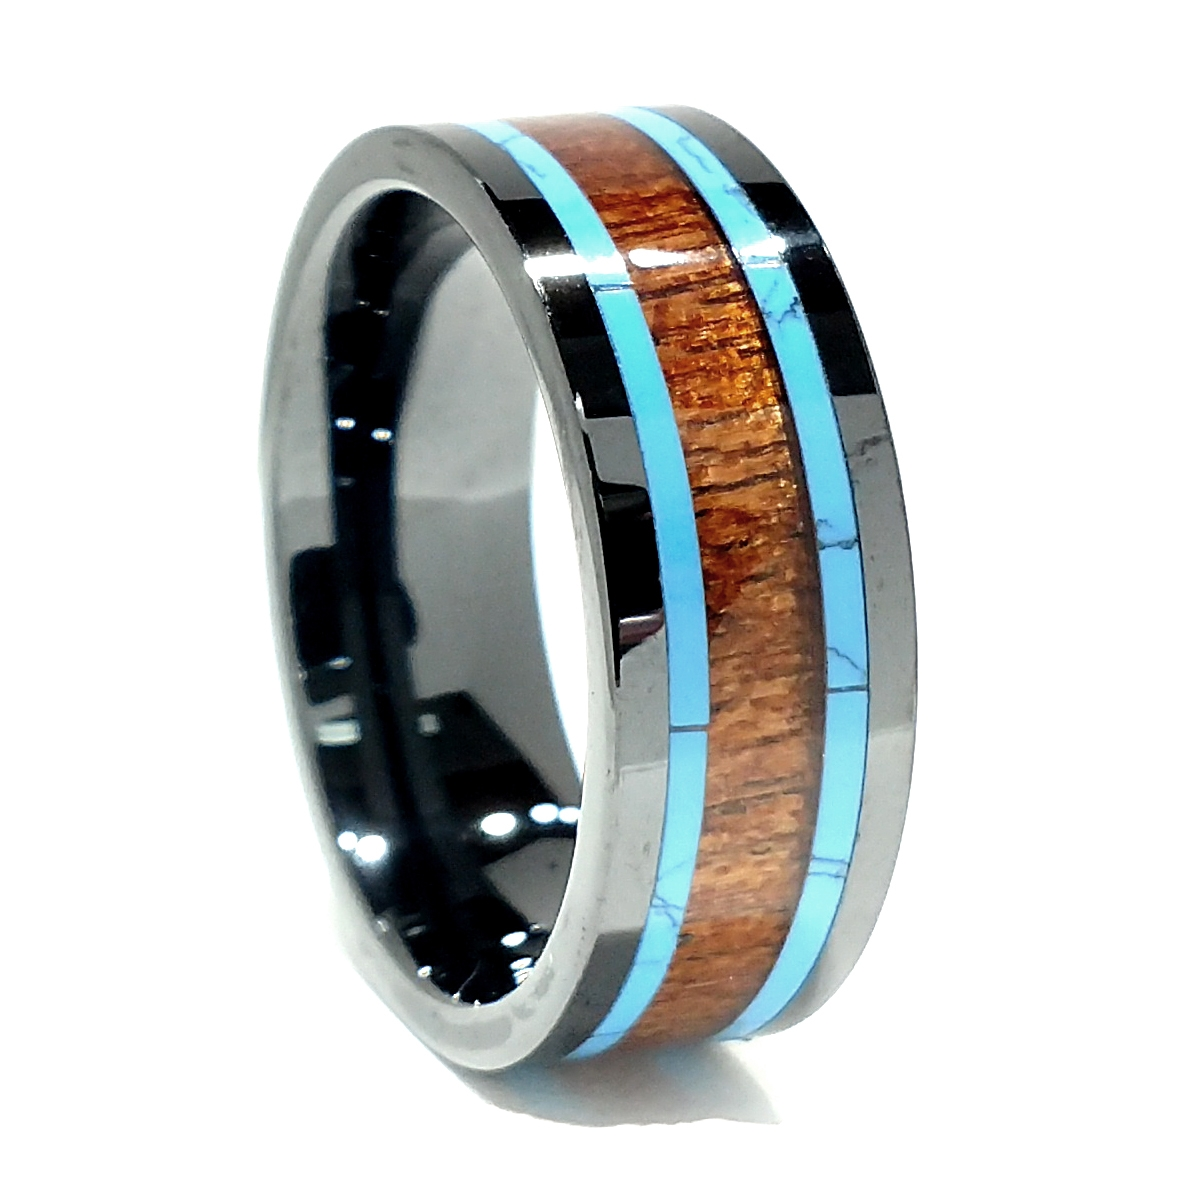 10mm Comfort Fit High Tech Ceramic Wedding Ring With Koa Wood And